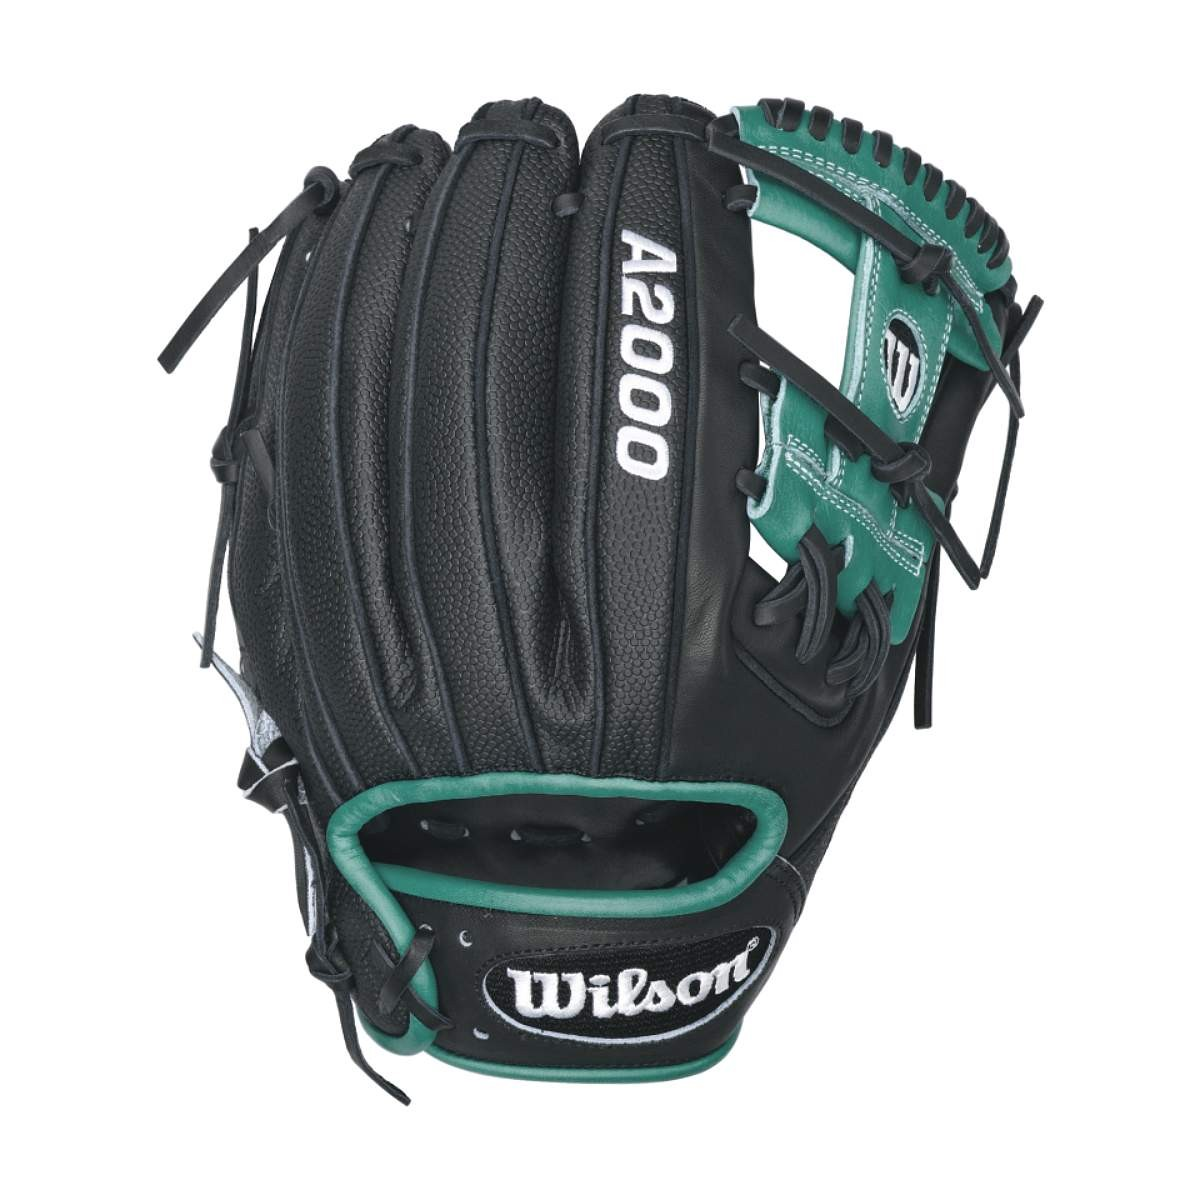 Wilson a rc on sale and for huge discount